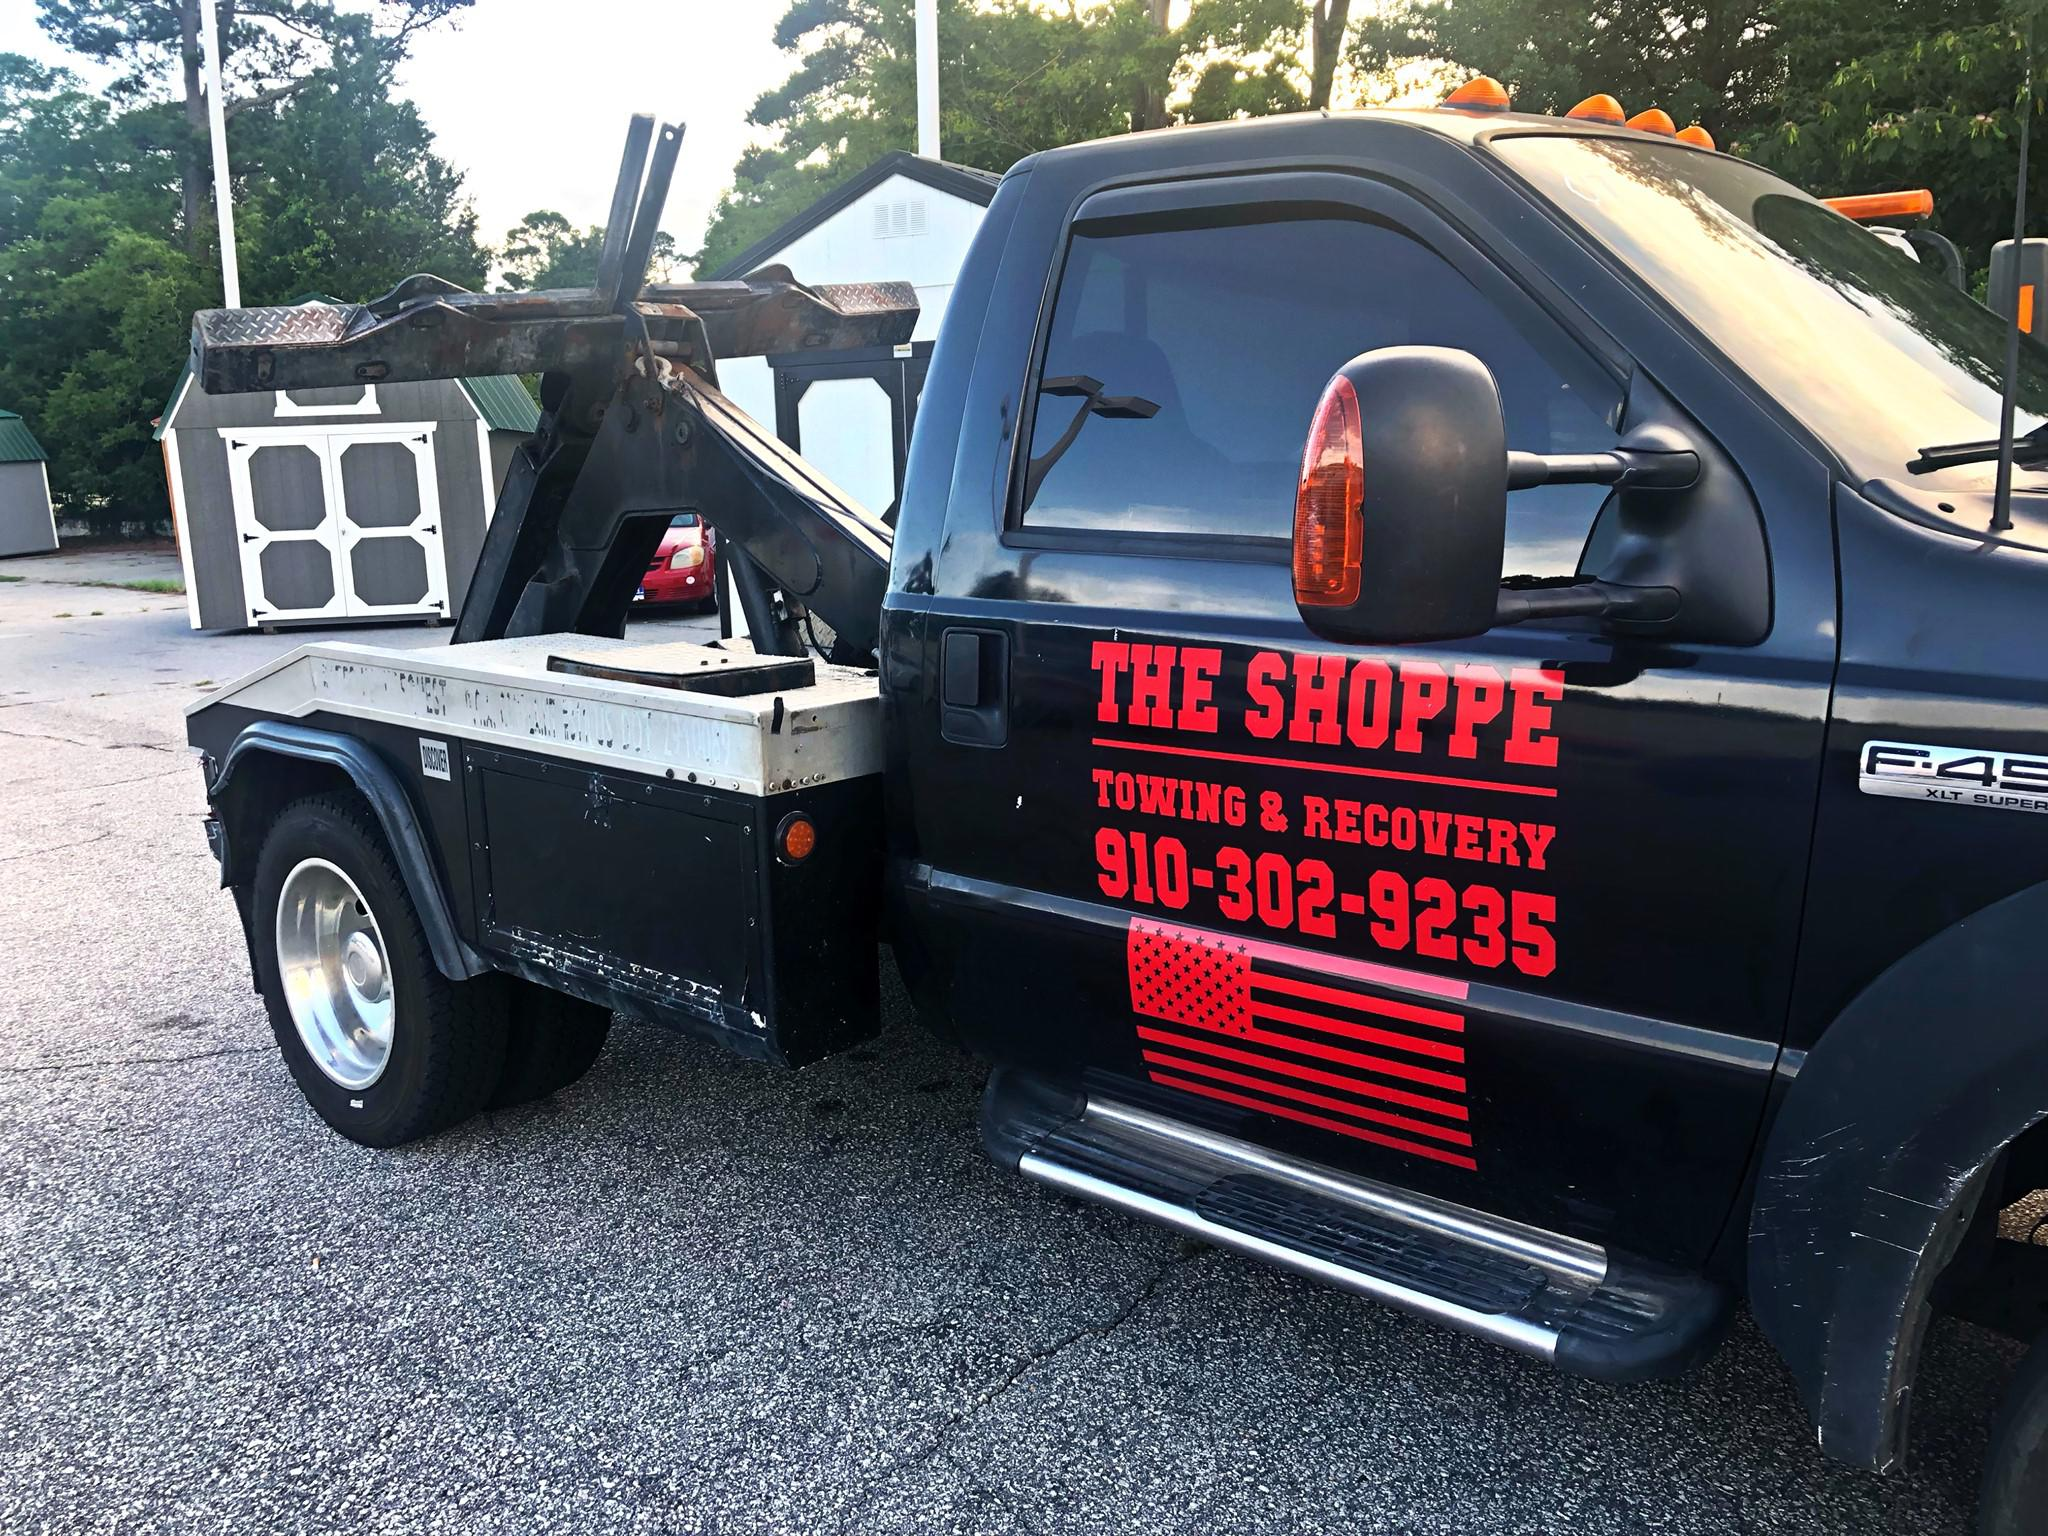 The Shoppe Towing & Recovery